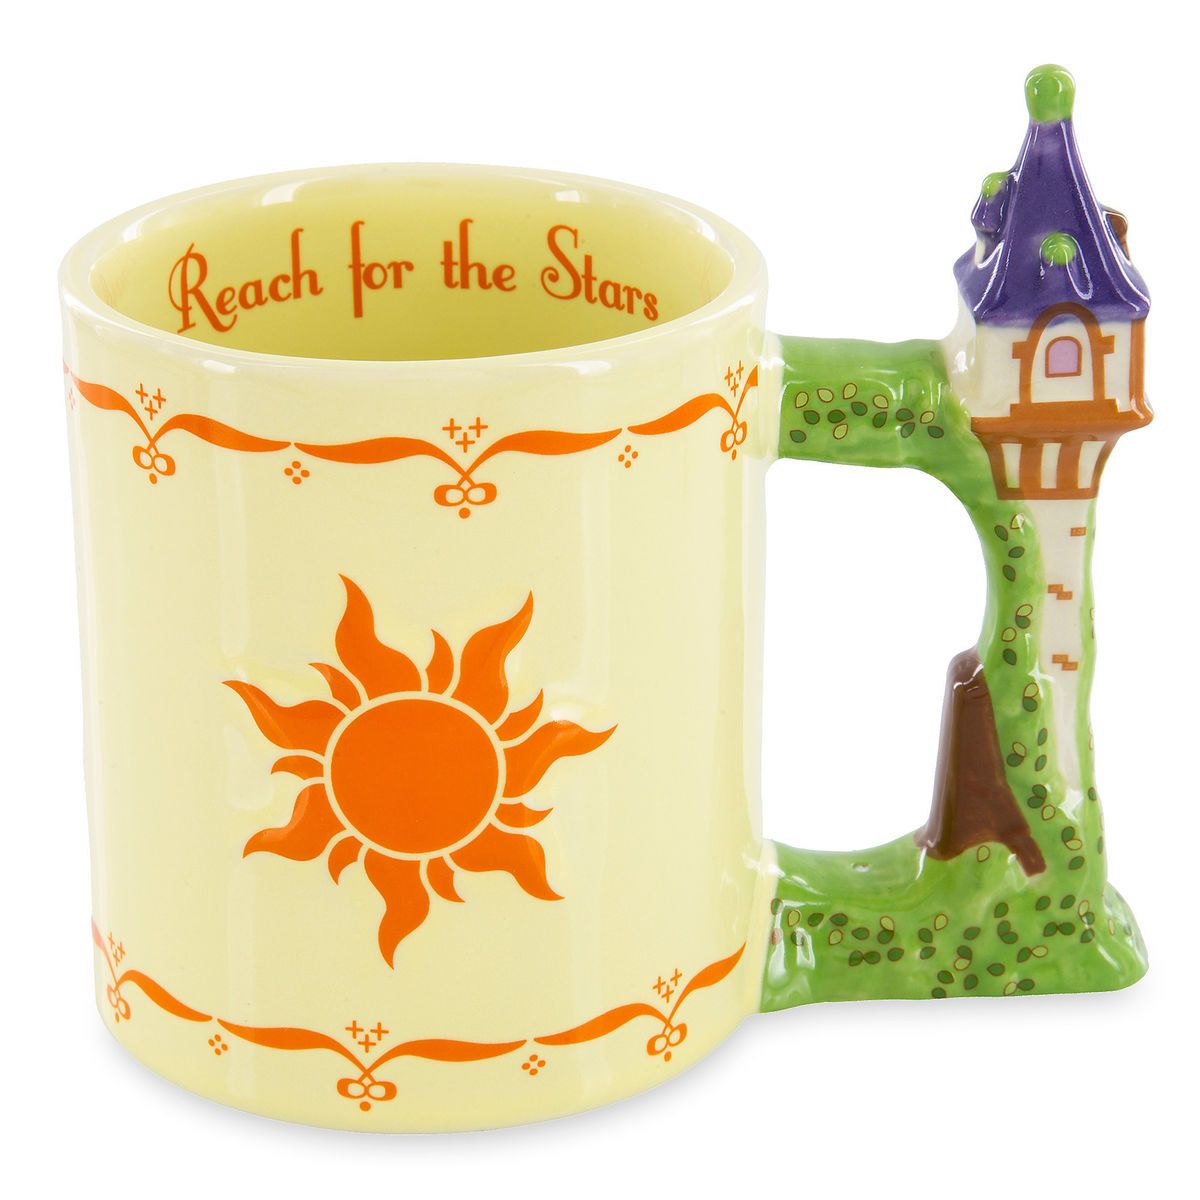 Start Your Mornings in 2019 Princess Style With These Gorgeous Mugs!